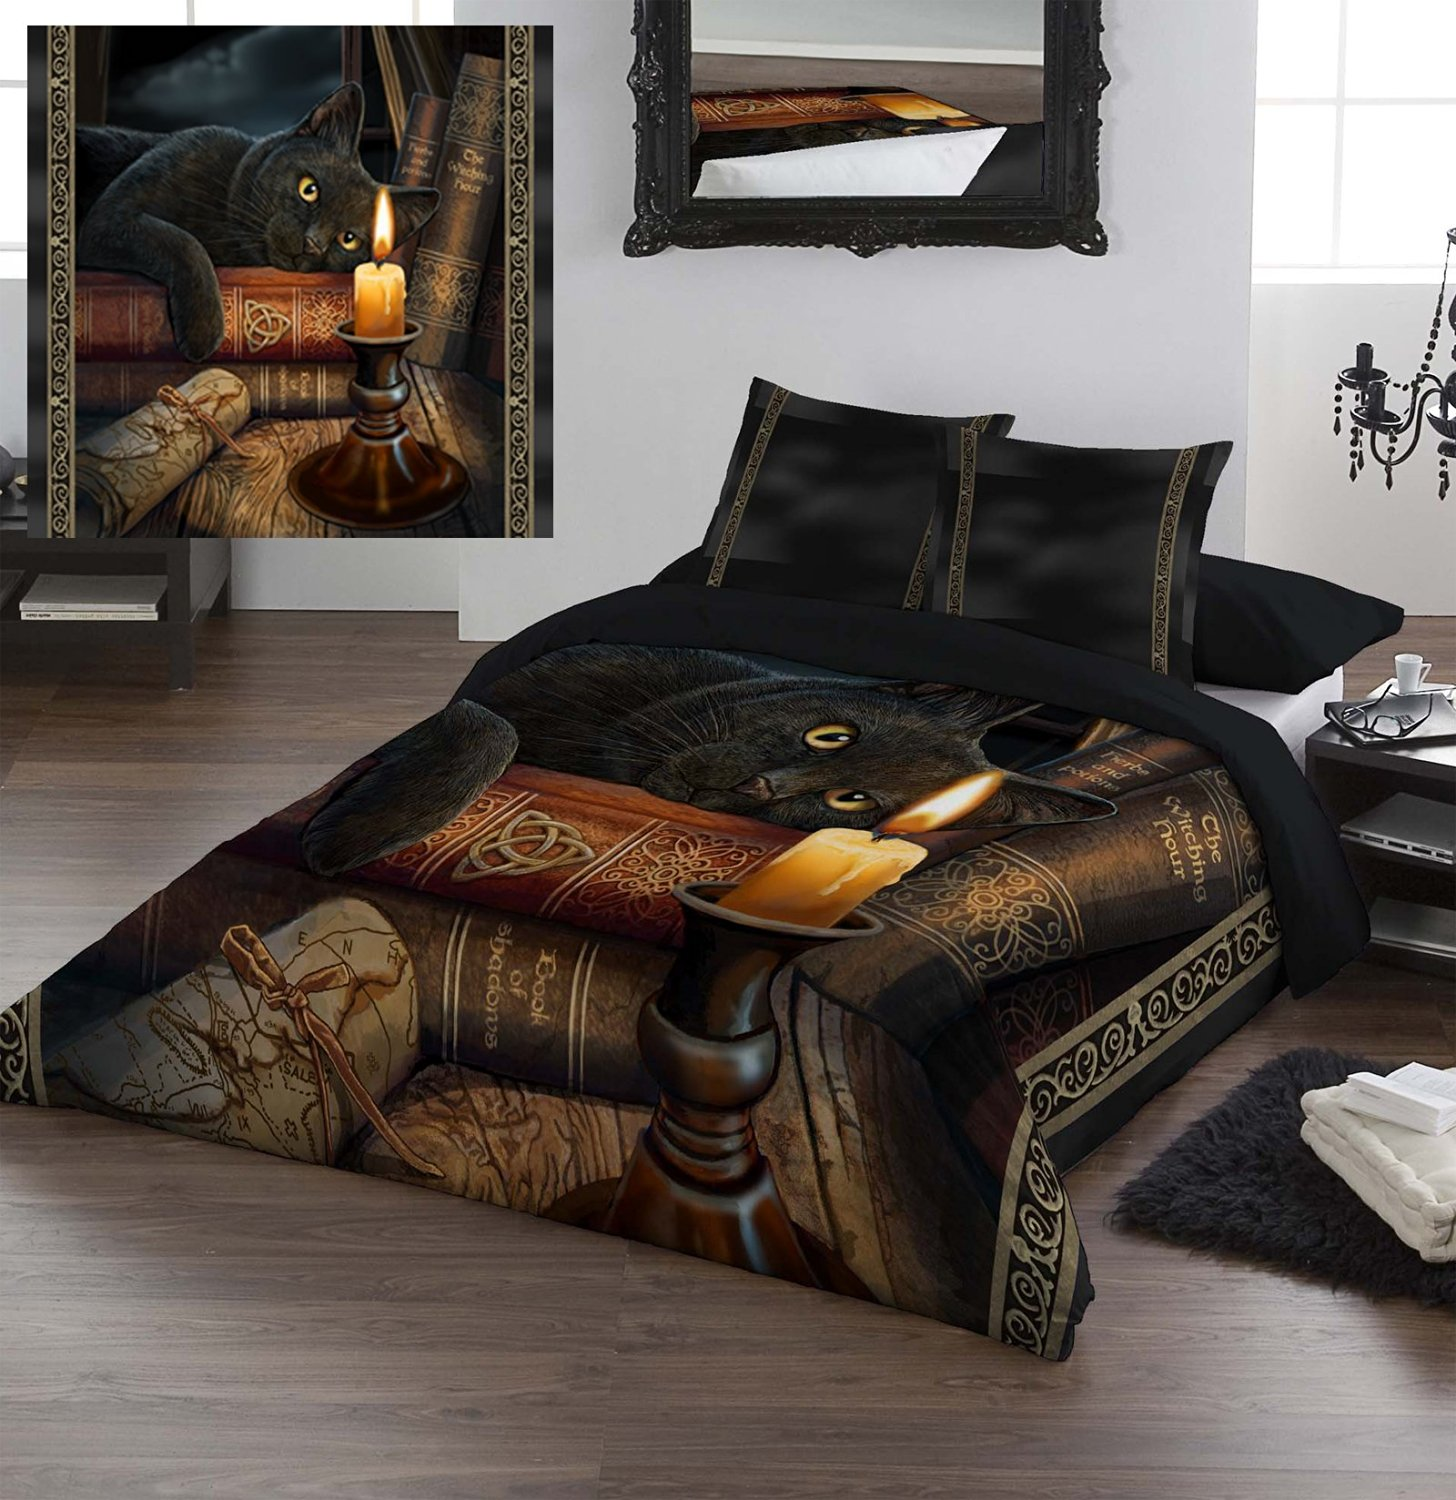 Versace Bedroom Sets Gothic Bedroom Accessories Bedroom Themes Bedroom Xmas Lights: How To Temporarily Change Your